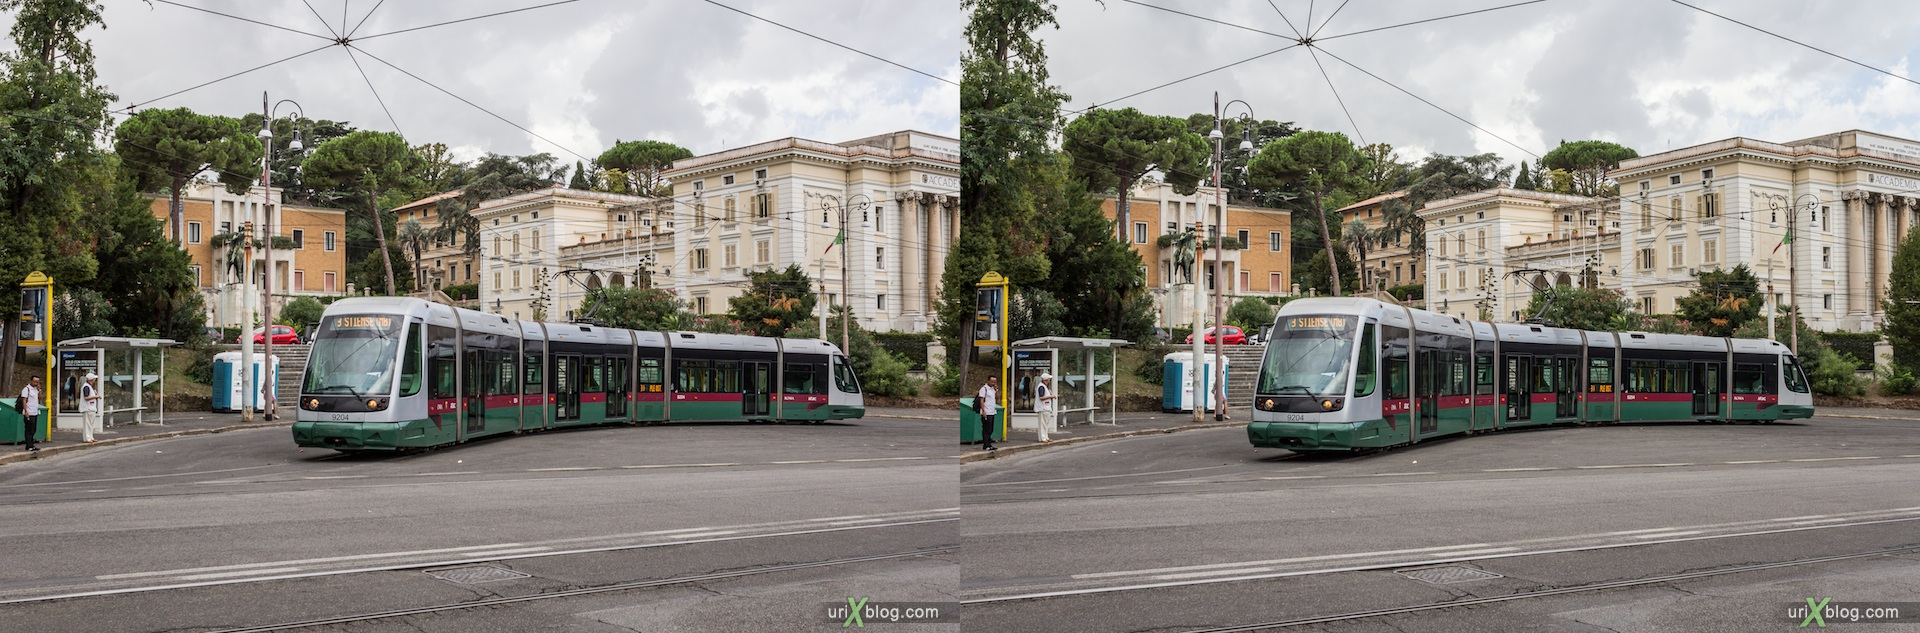 2012, Piazza Thorvaldsen square, tram, villa Borghese, 3D, stereo pair, cross-eyed, crossview, cross view stereo pair